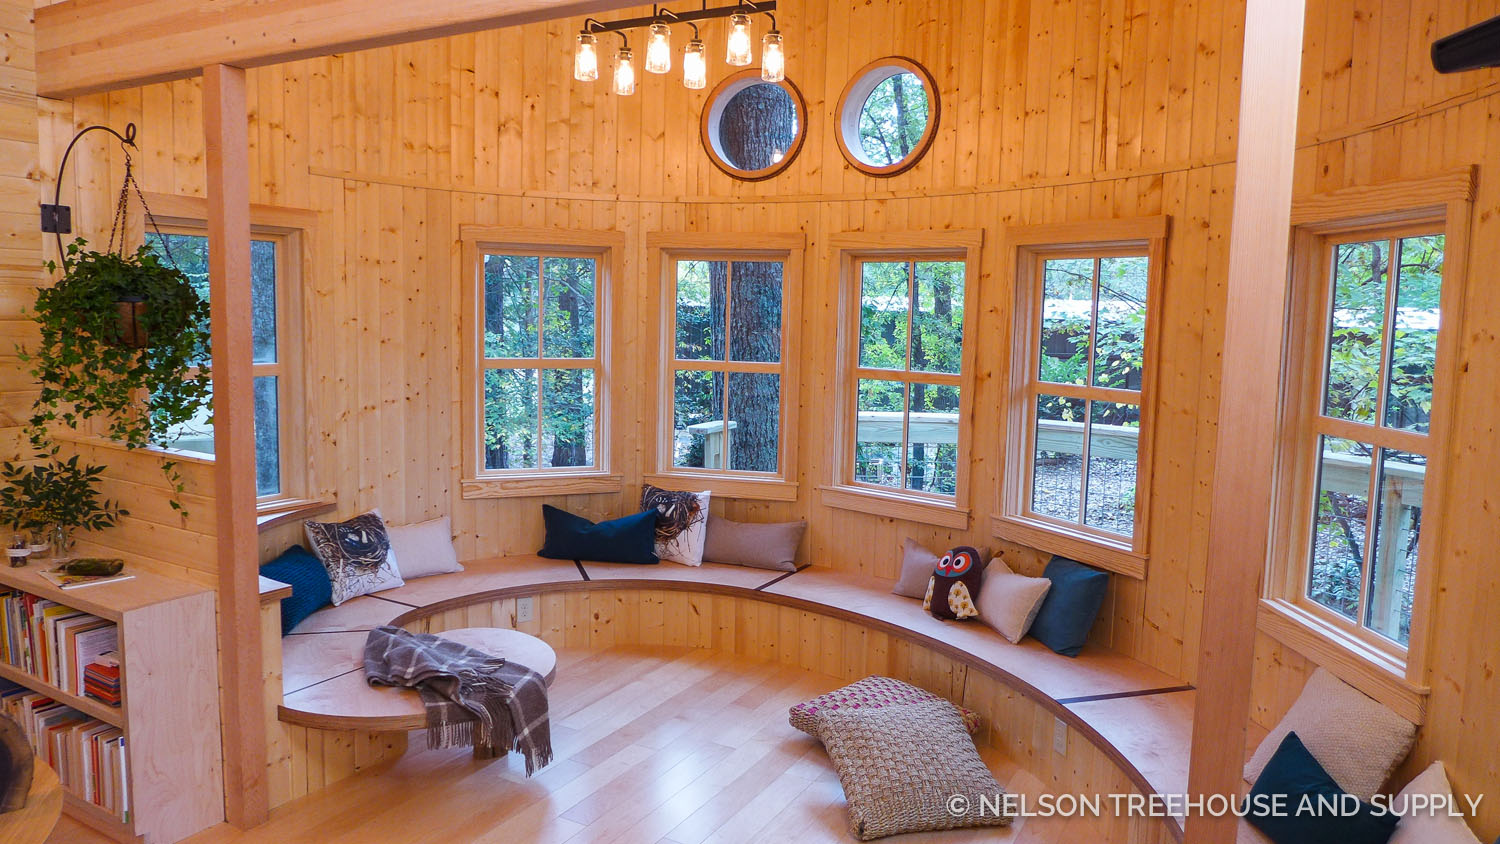 Photo Tour Owls Nest Treehouse Library Nelson Treehouse